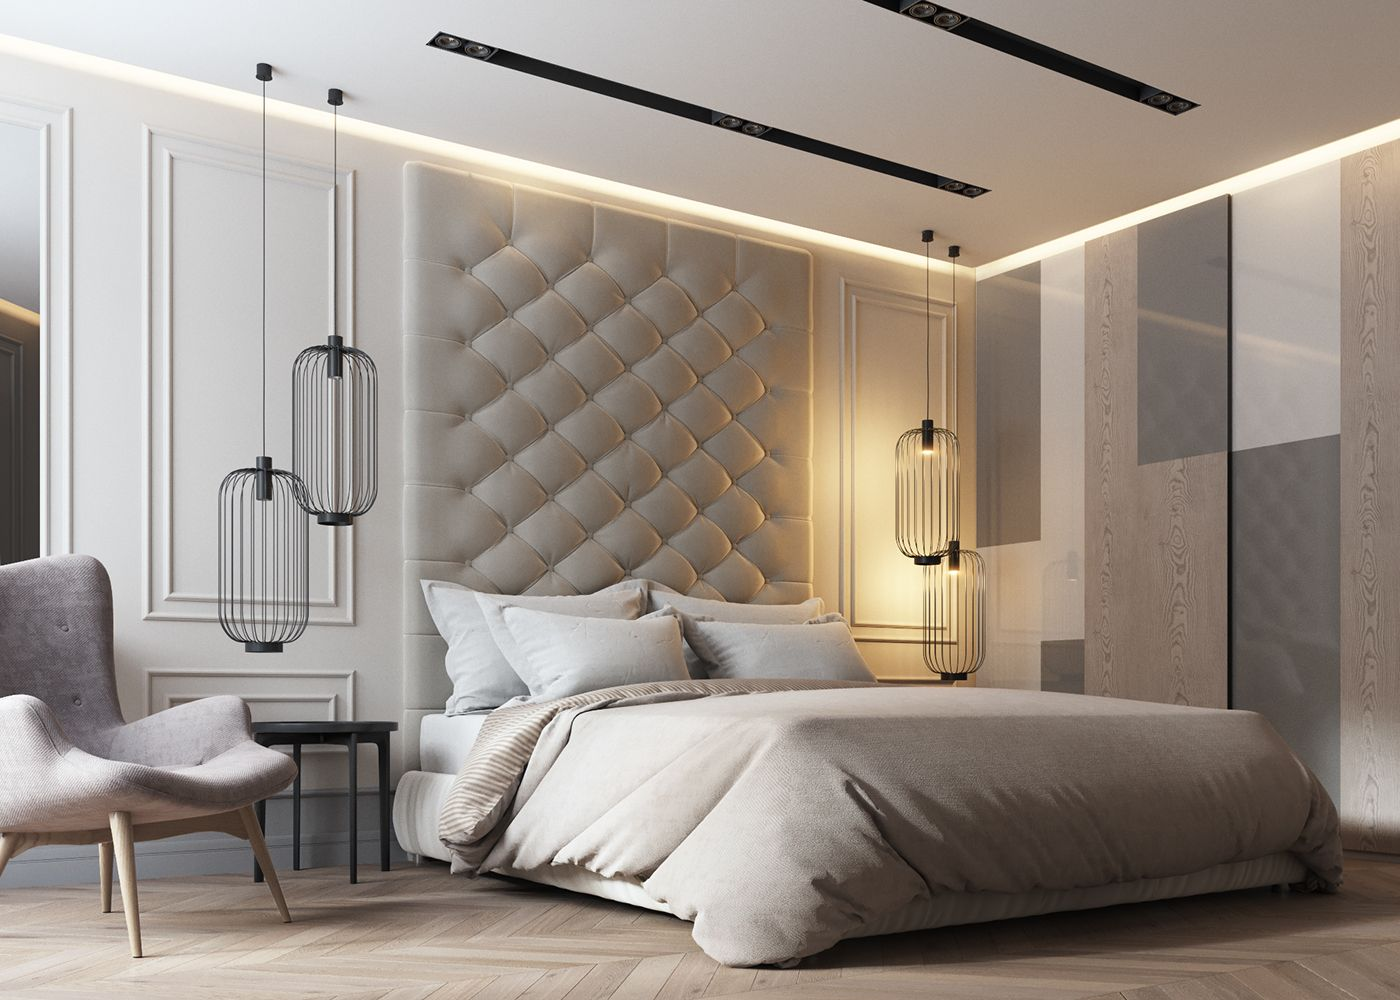 Best 25+ Modern bedroom design ideas on Pinterest | Modern ...